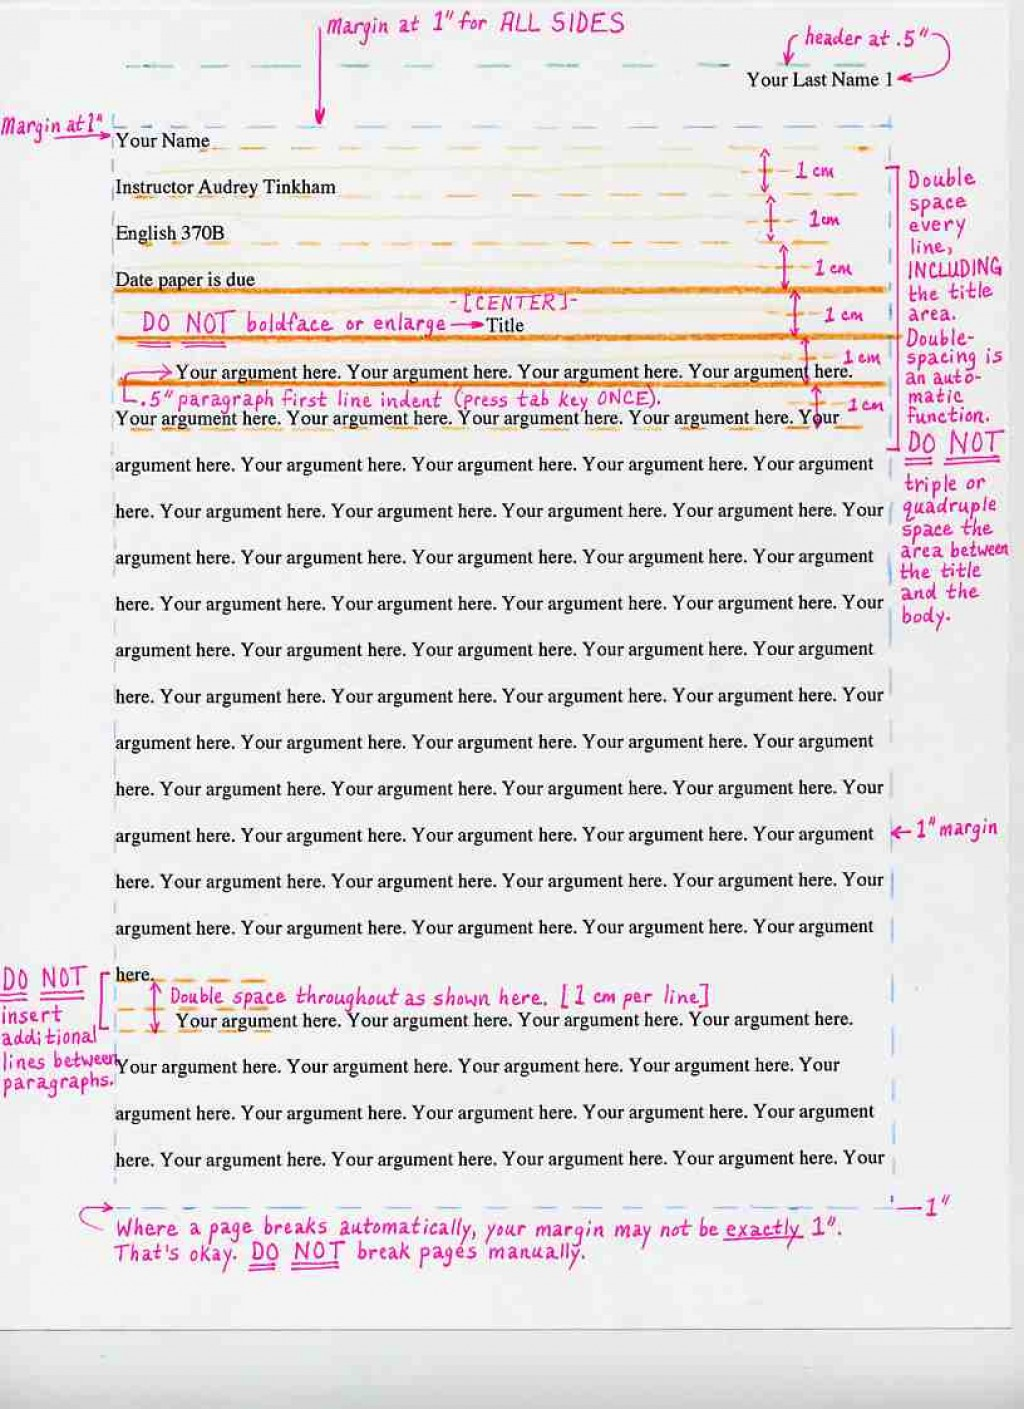 010 Img067 Essay Example Amazing Style Answer Harvard Format Guide Large